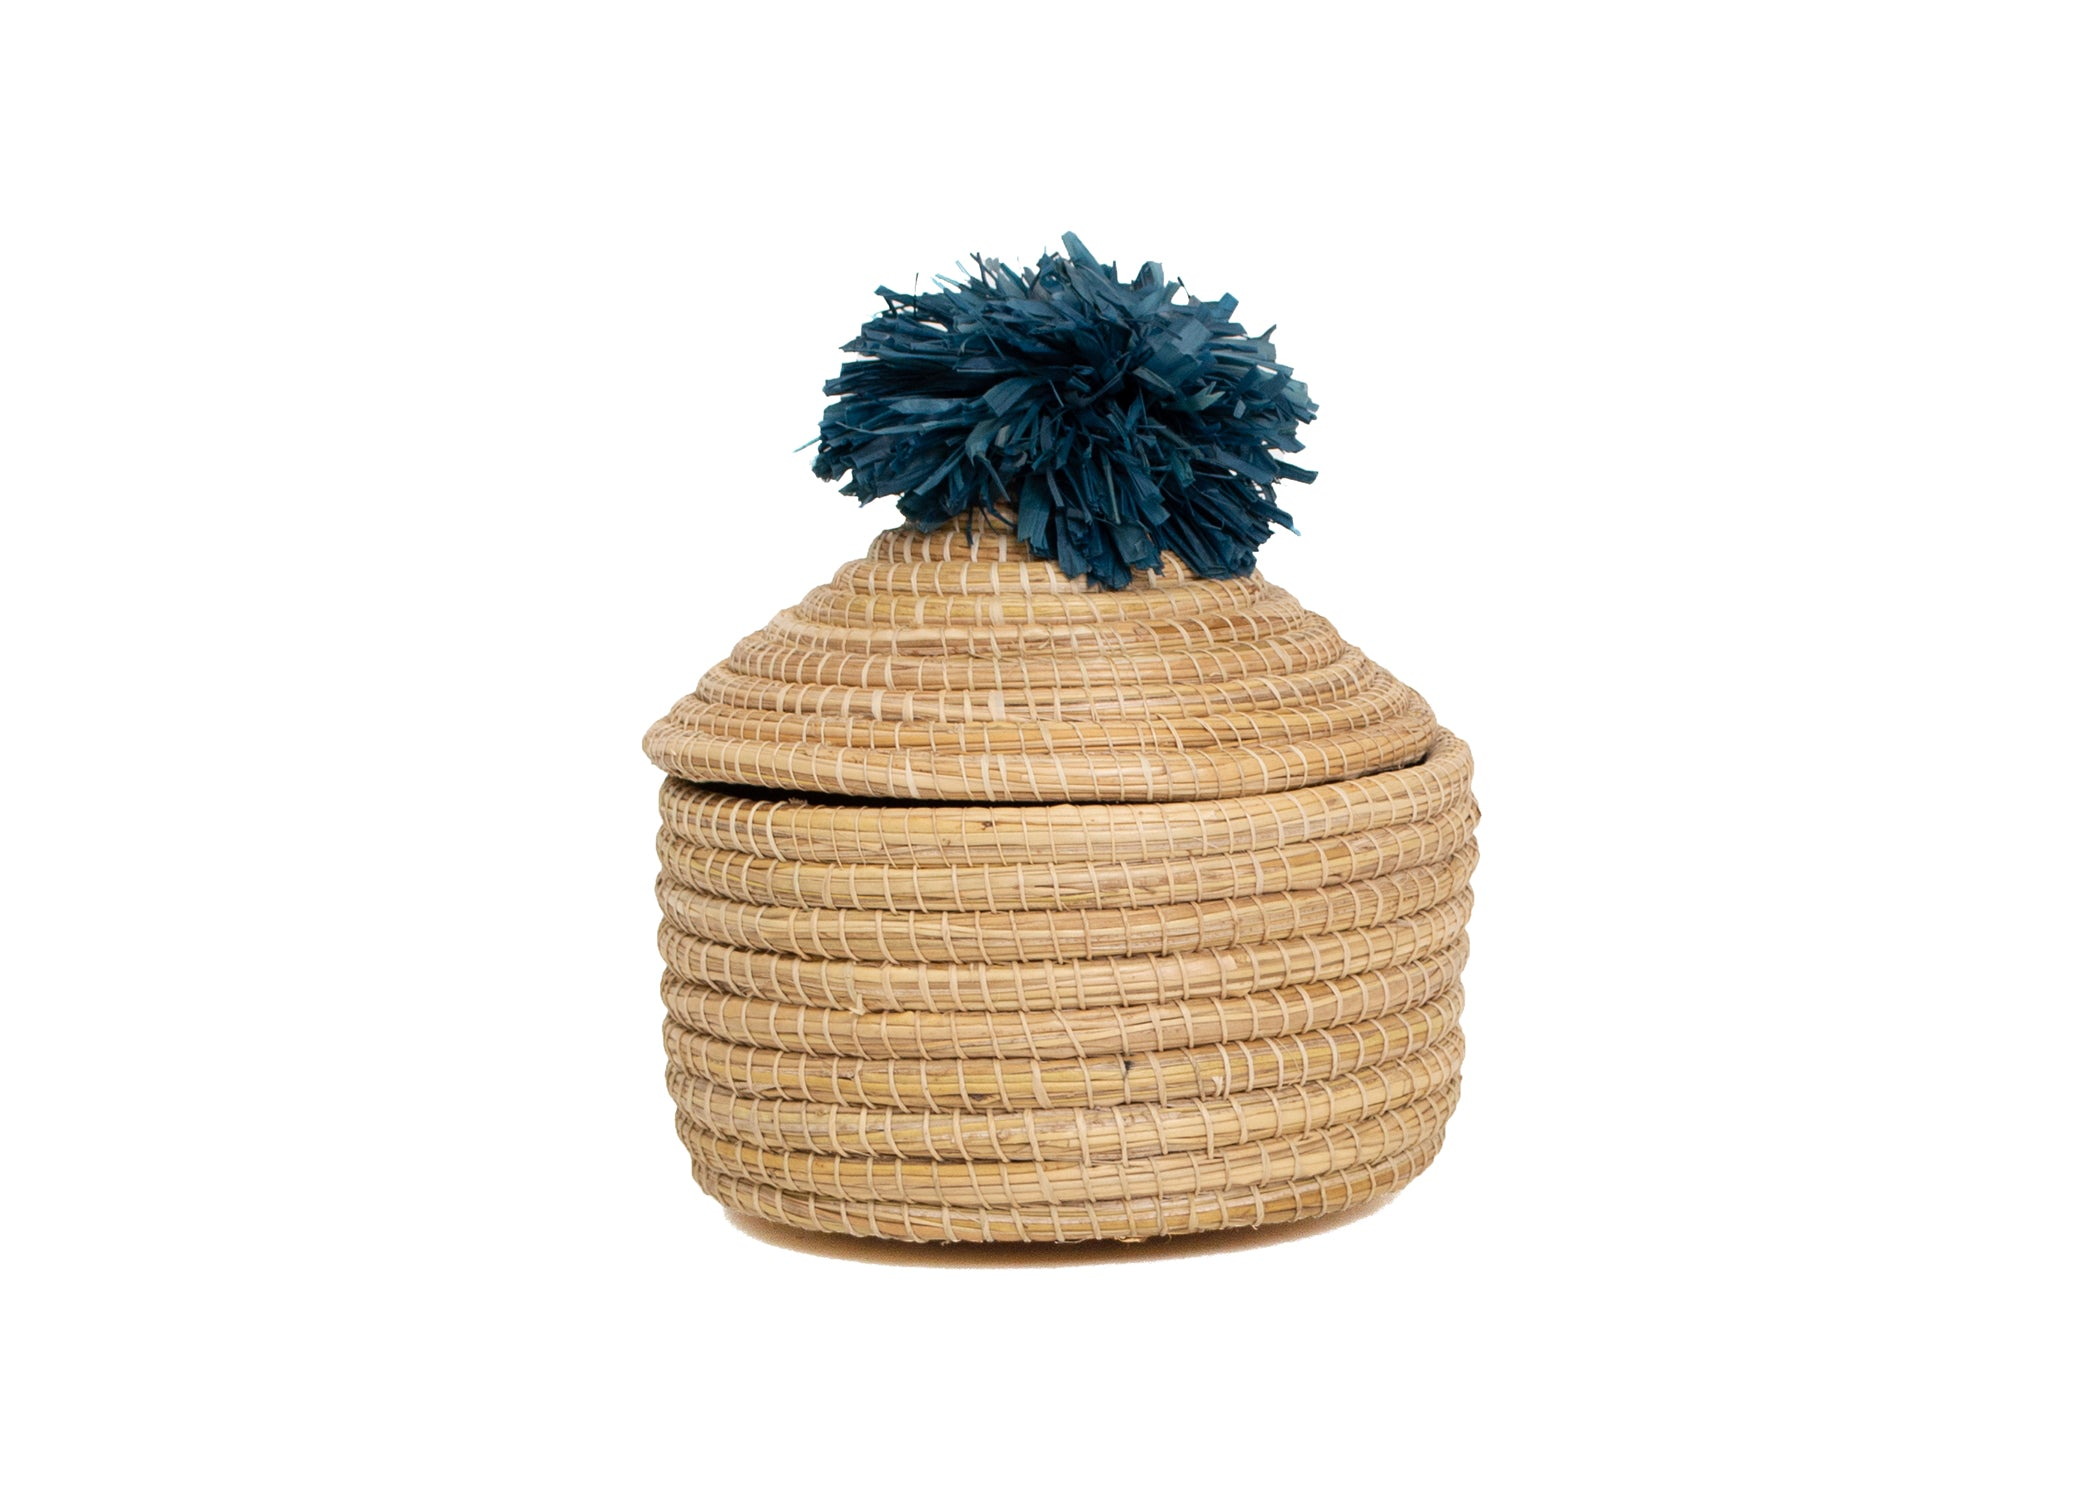 Niagara Penelope Pom Pom Box - KAZI - Artisan made high quality home decor and wall art